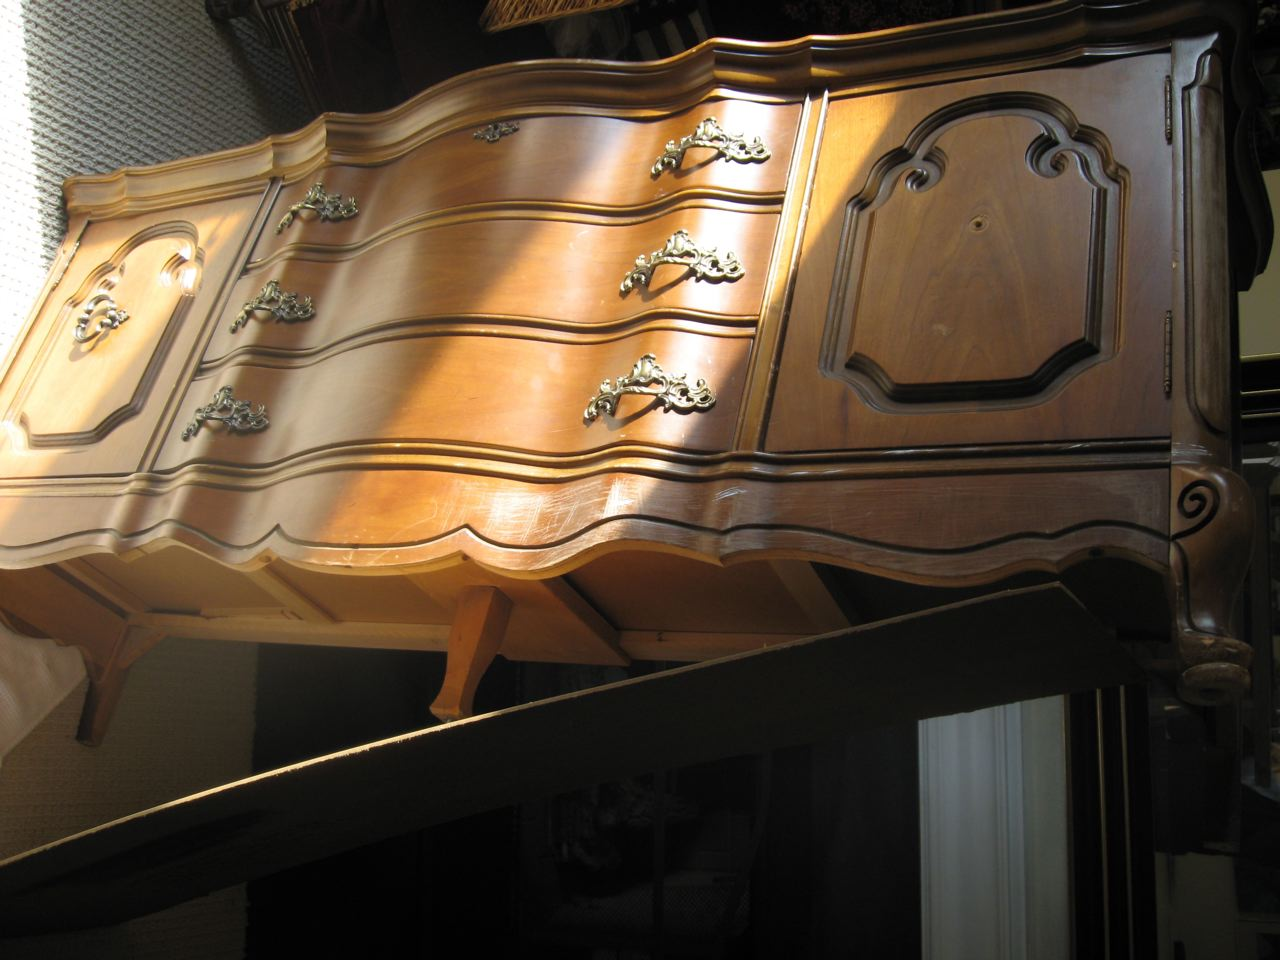 Dresser turned bathroom vanity - I Love Love Love The Look Of A Sideboard Or Dresser Turned Into A Bathroom Vanity I Looked At So Many Pictures Of Furniture That Had Been Turned Into A